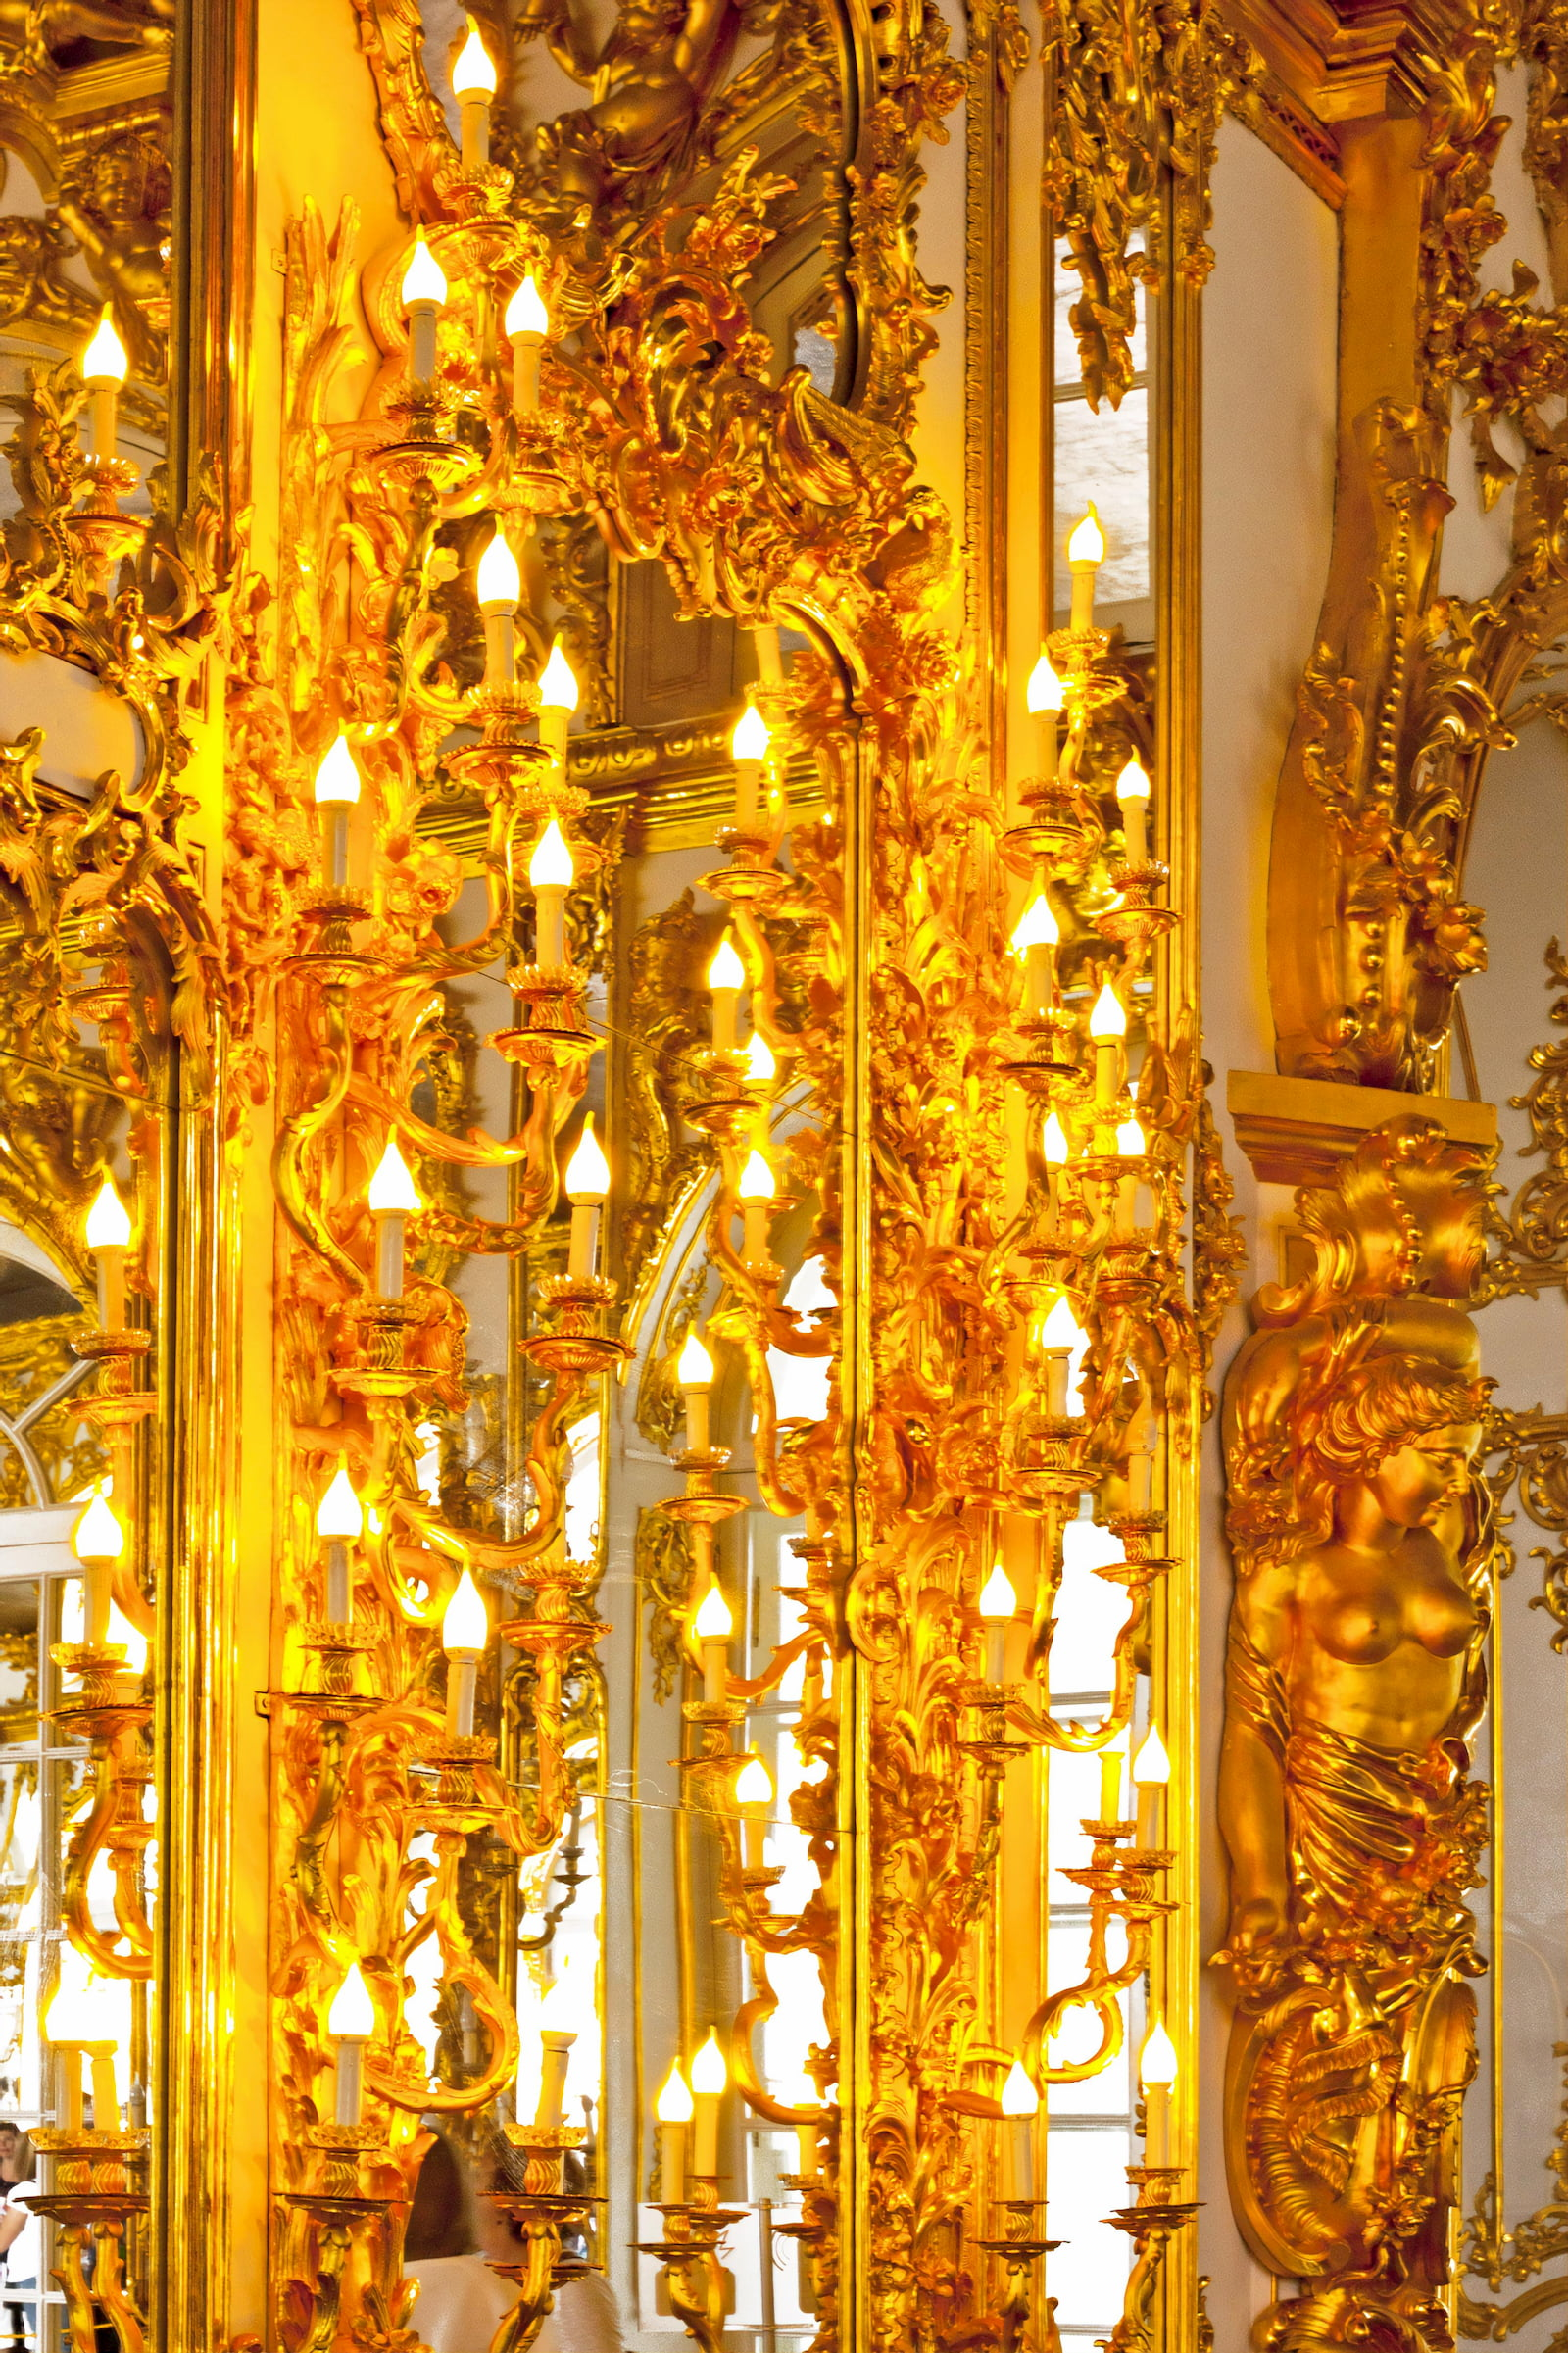 Amber Room in the Catherine Palace